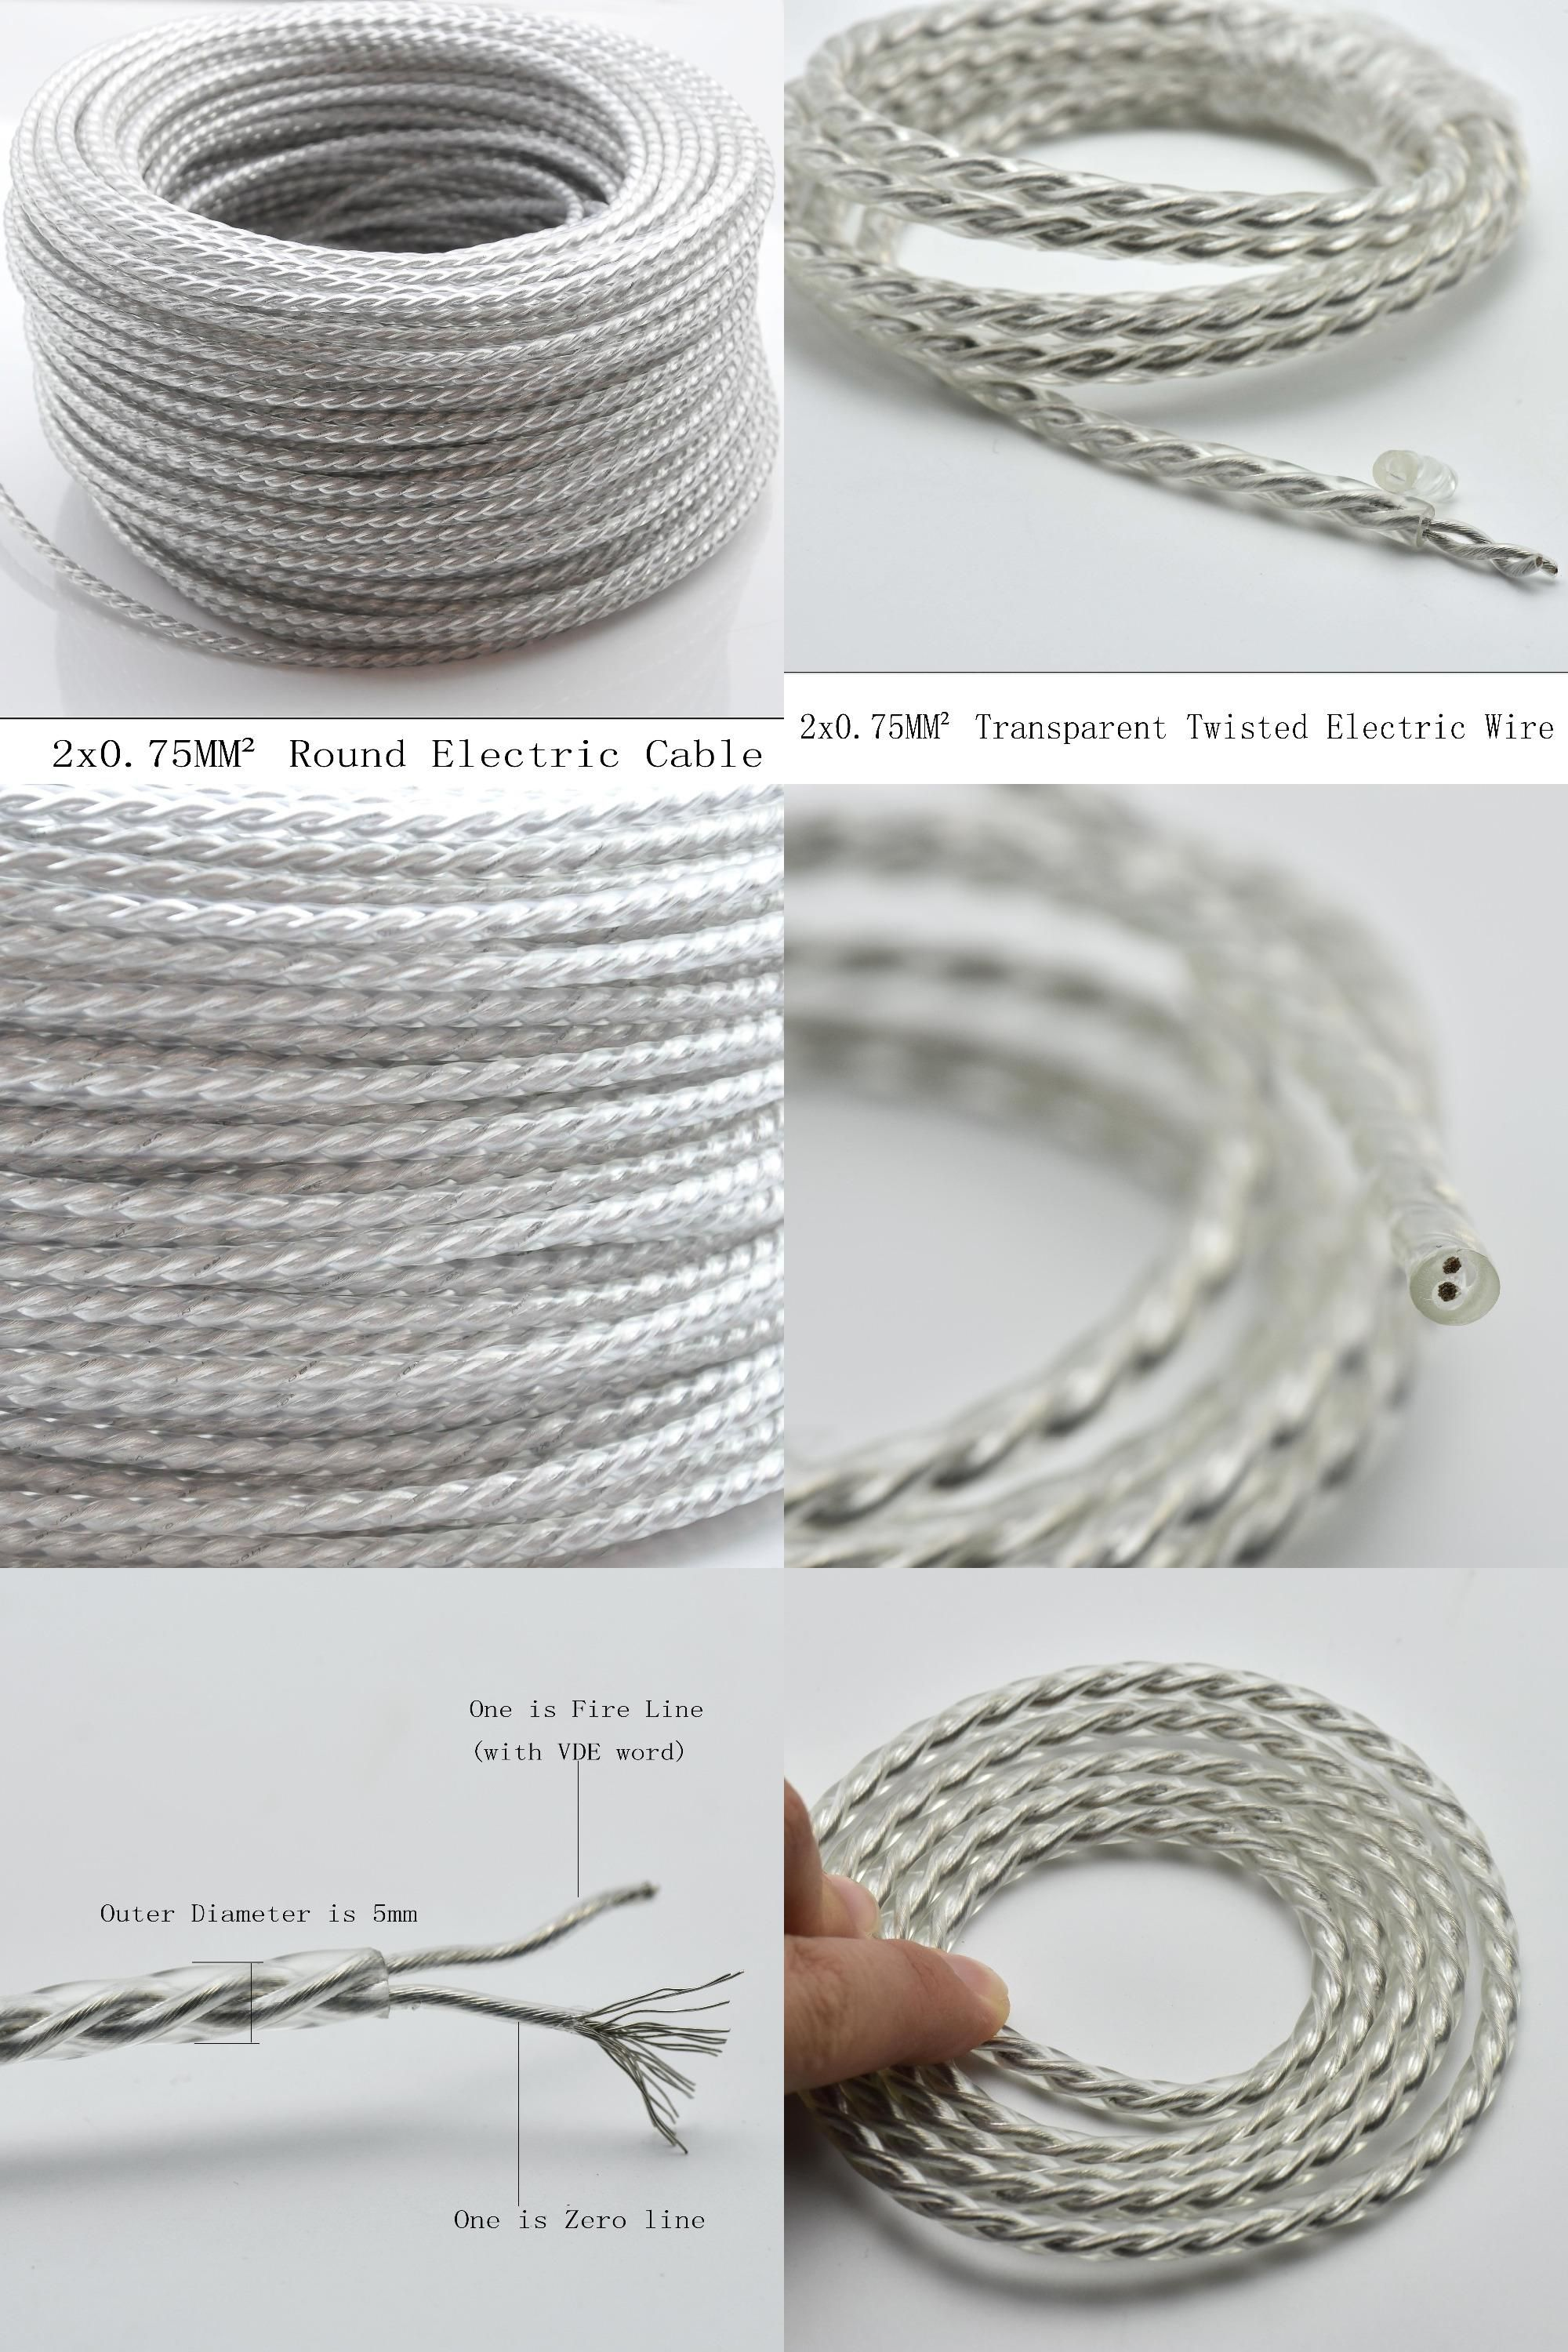 Visit to Buy] 2*0.75mm 5M Round Textile Wire Transparent Twisted ...